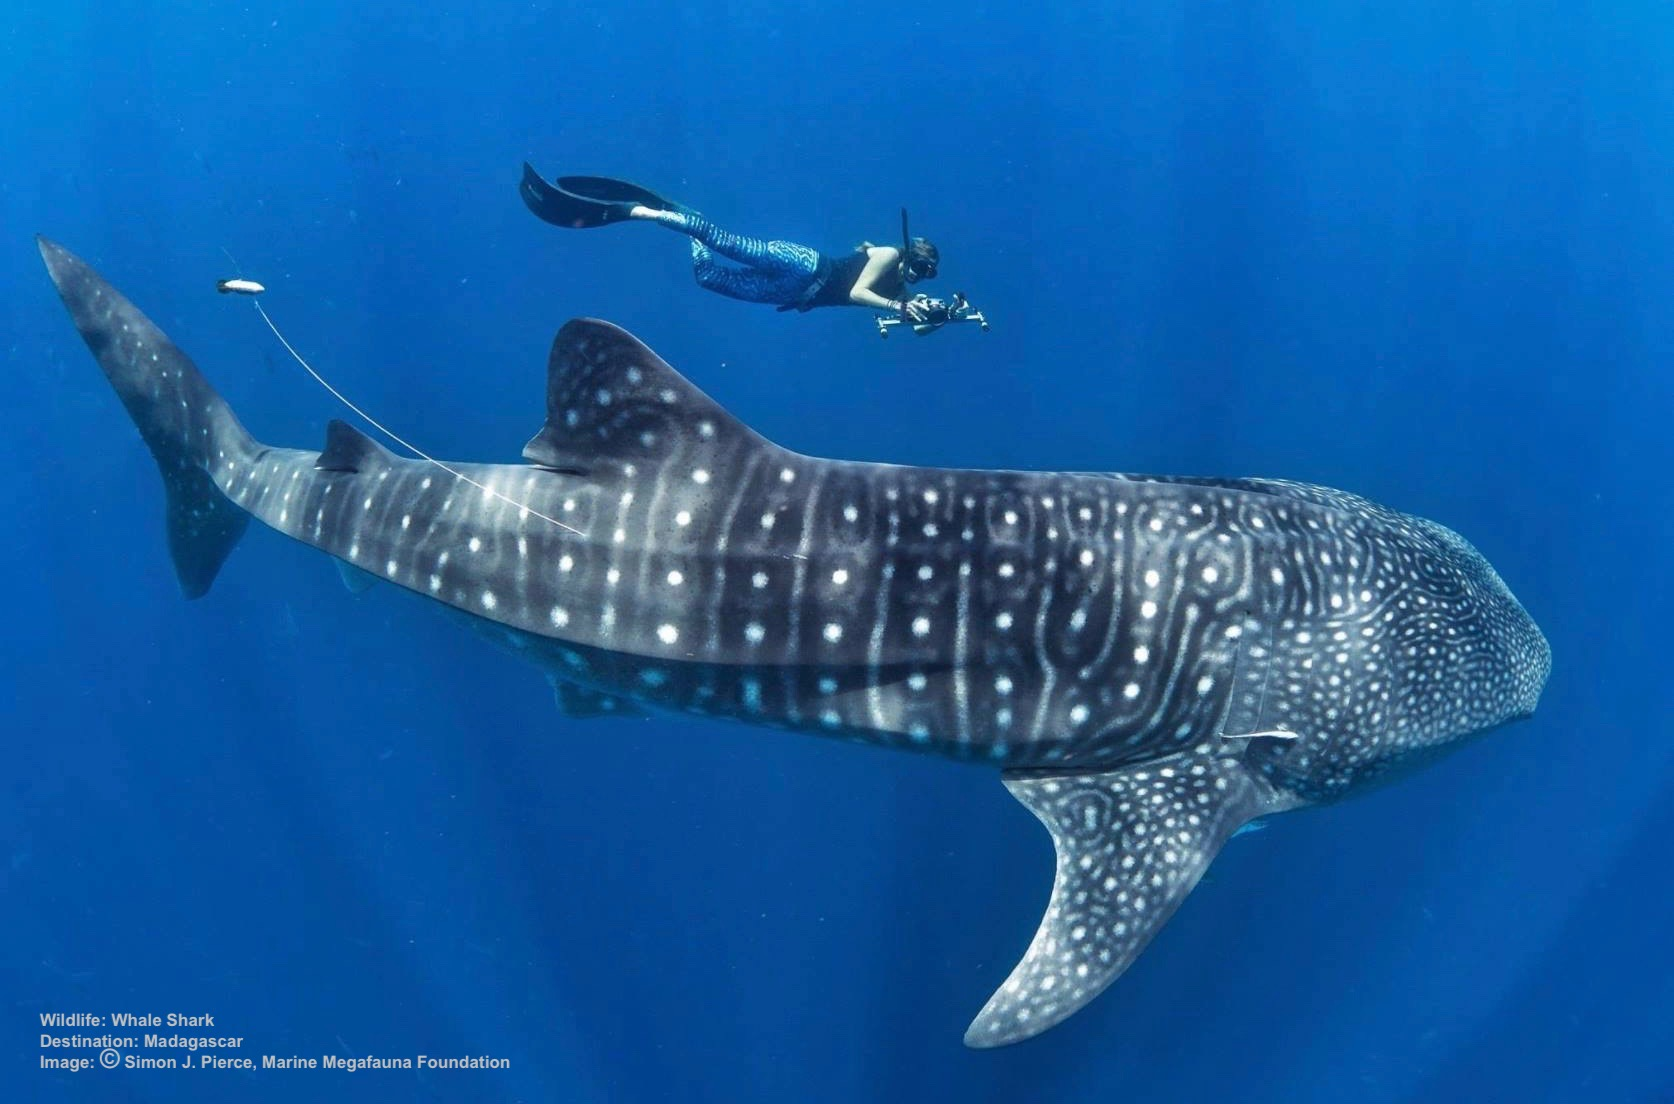 How to Swim Responsibly with Whale Sharks